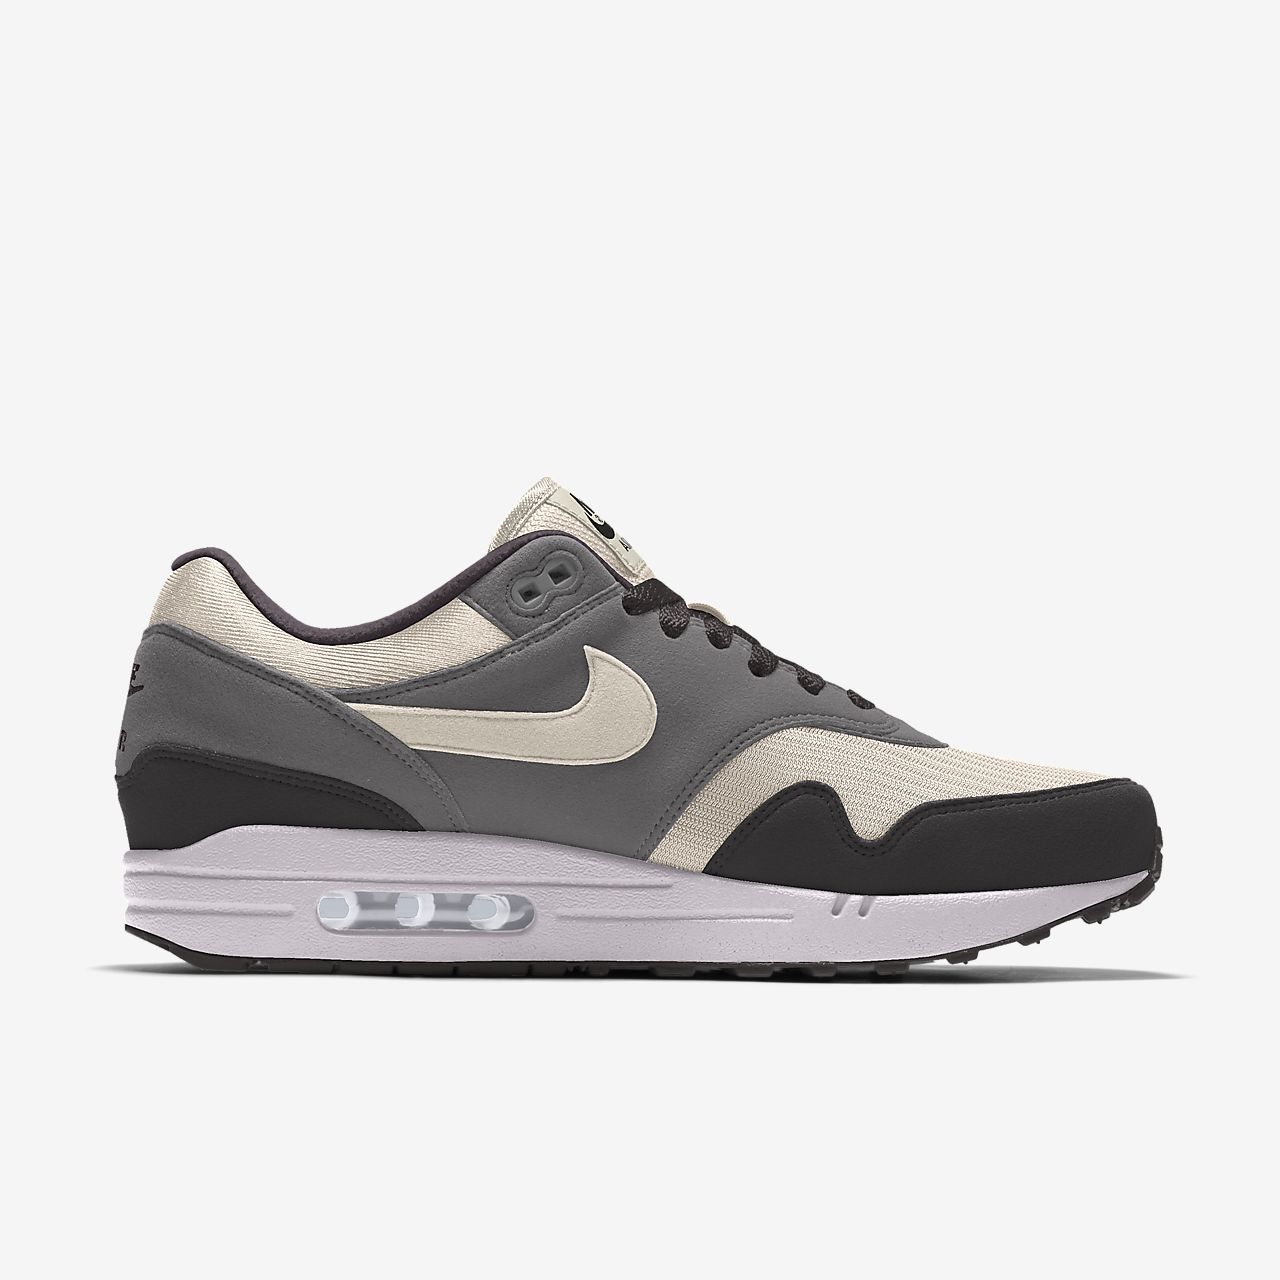 2nike air max 1 by you